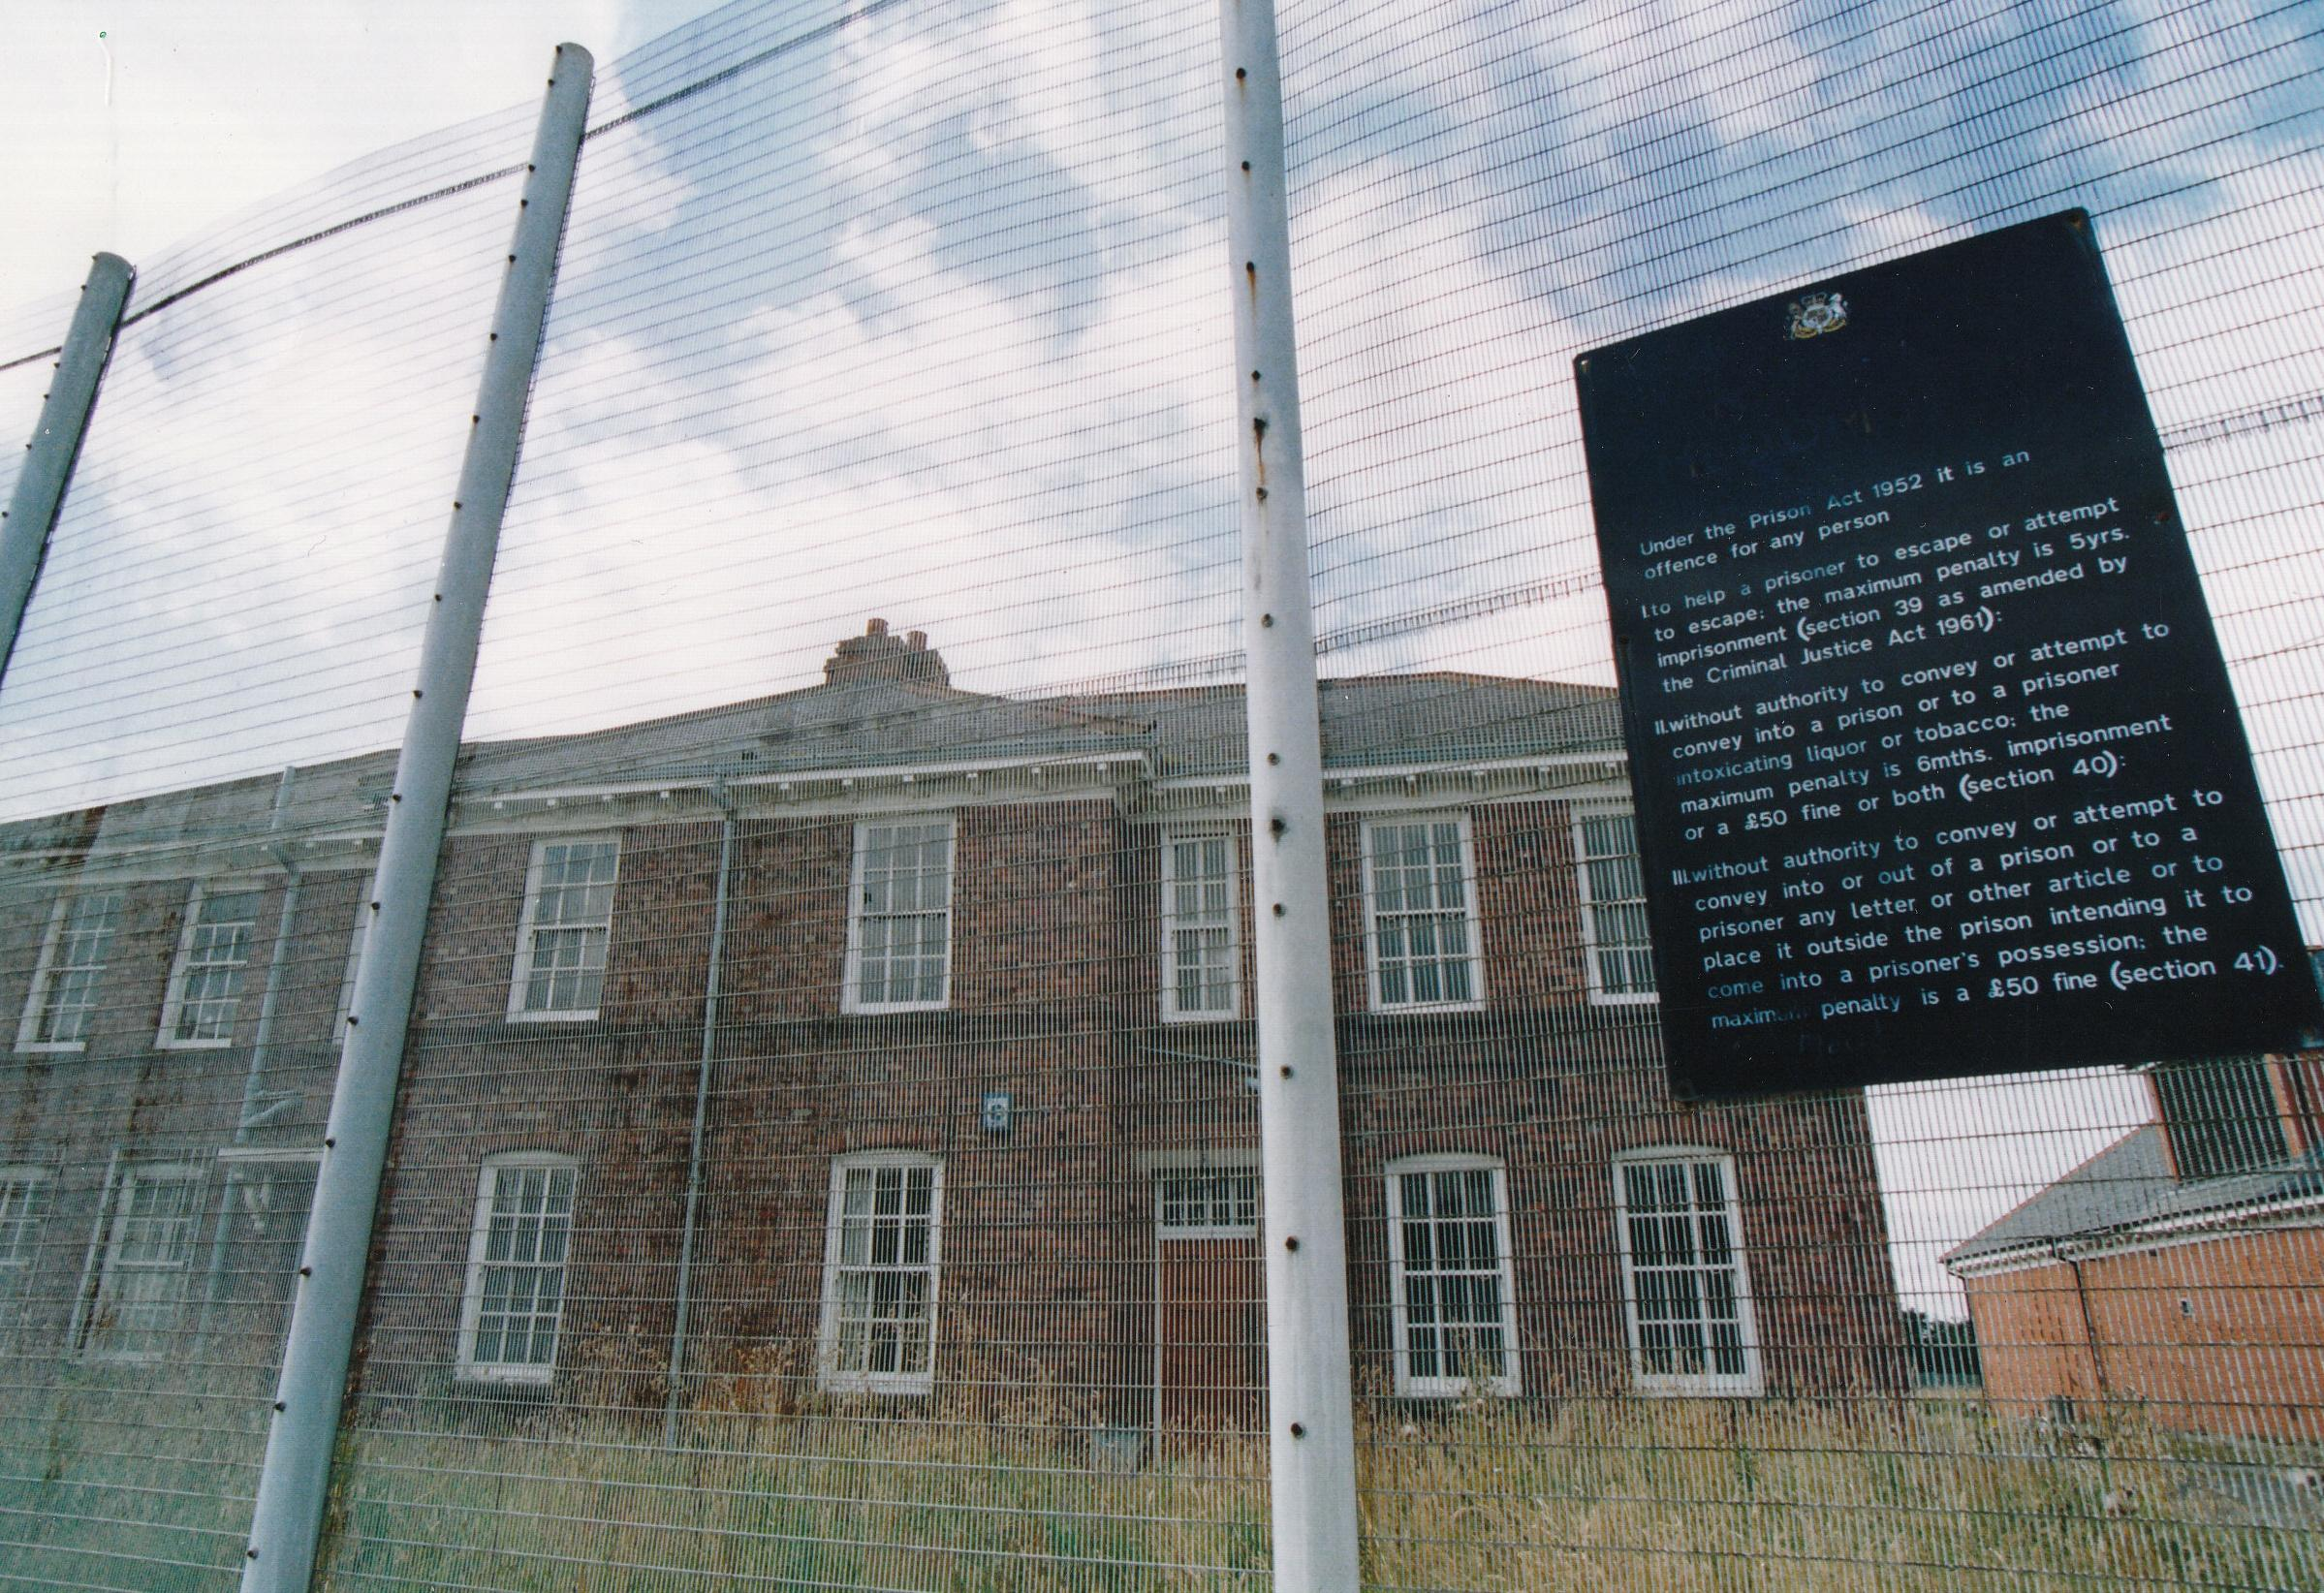 Detectives investigating historic abuse at Medomsley complete initial interviews of prison staff